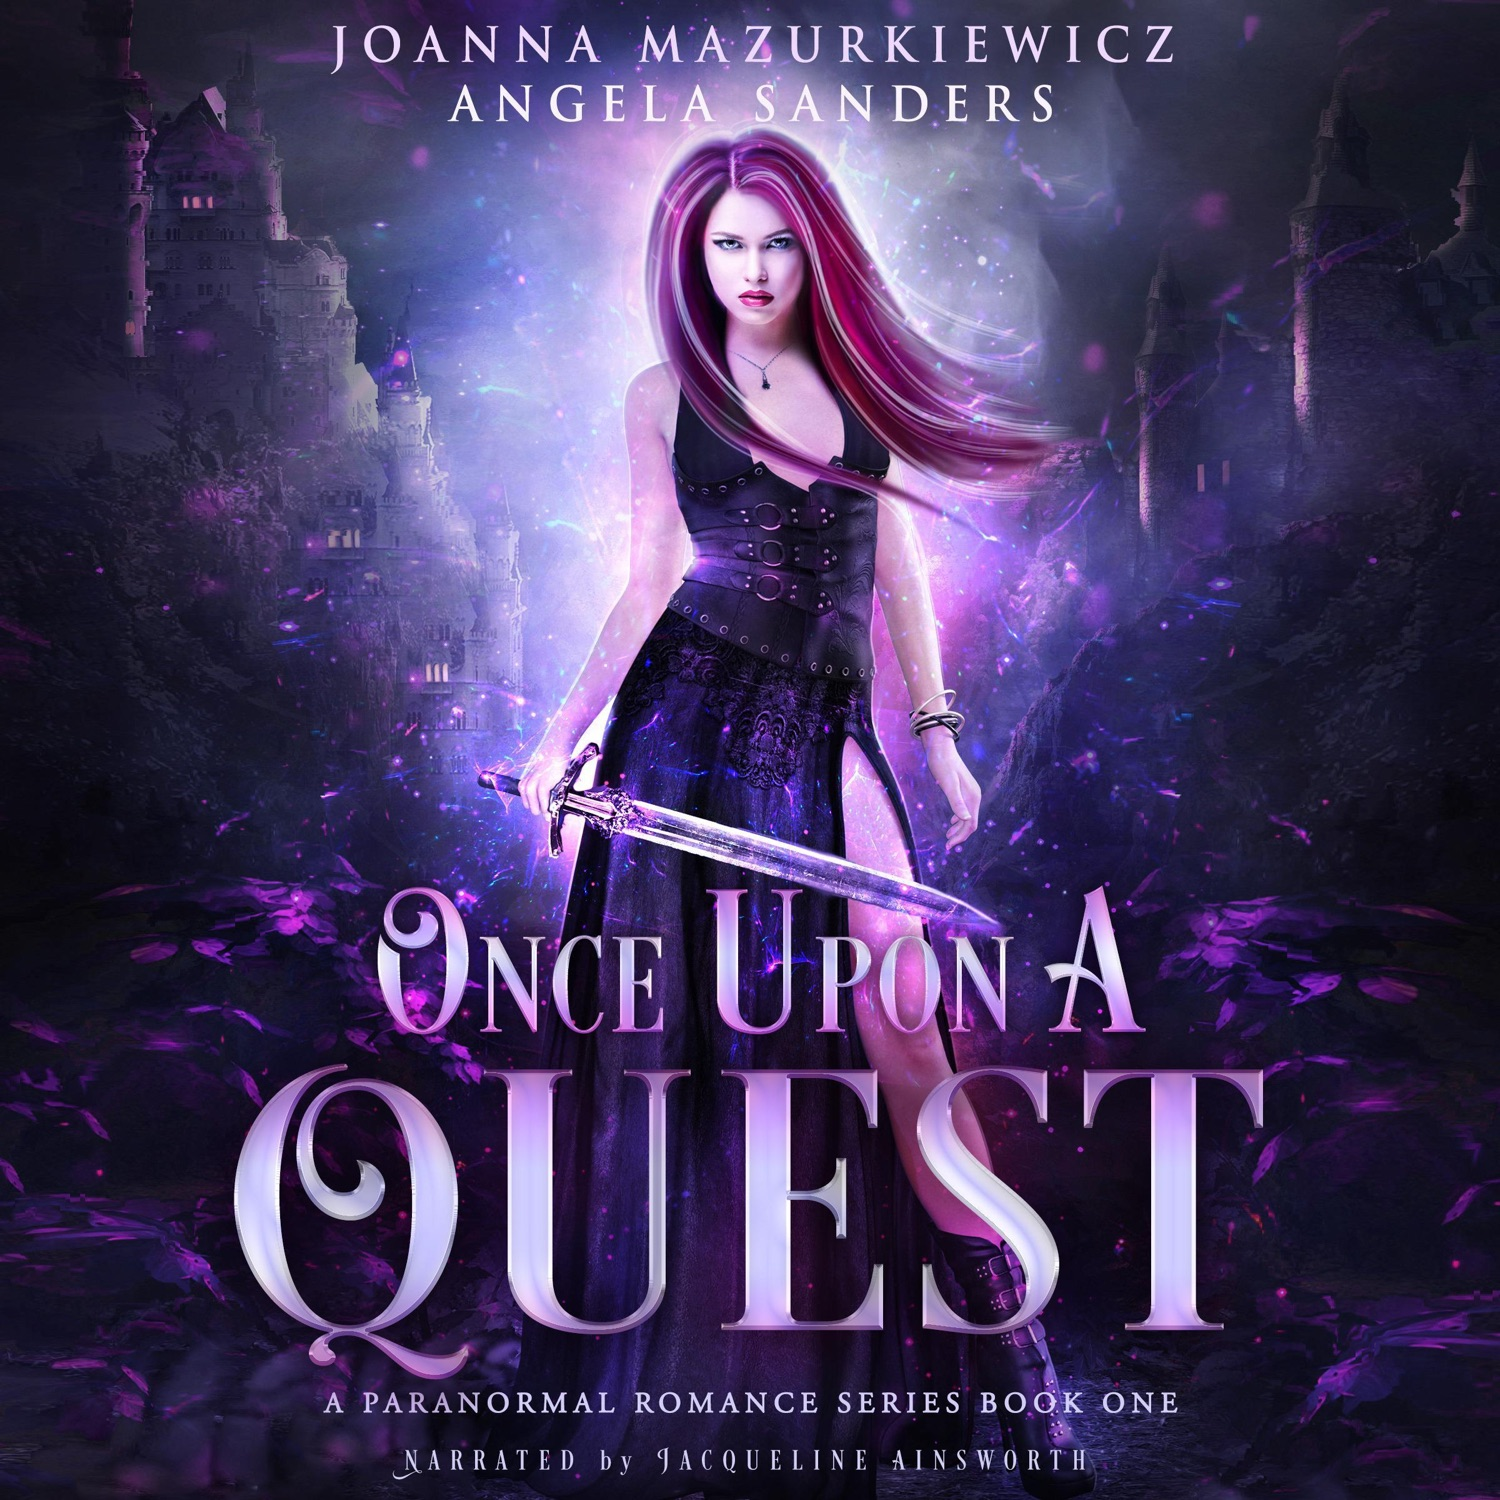 Once Upon a Quest, by Joanna Mazurkiewicz